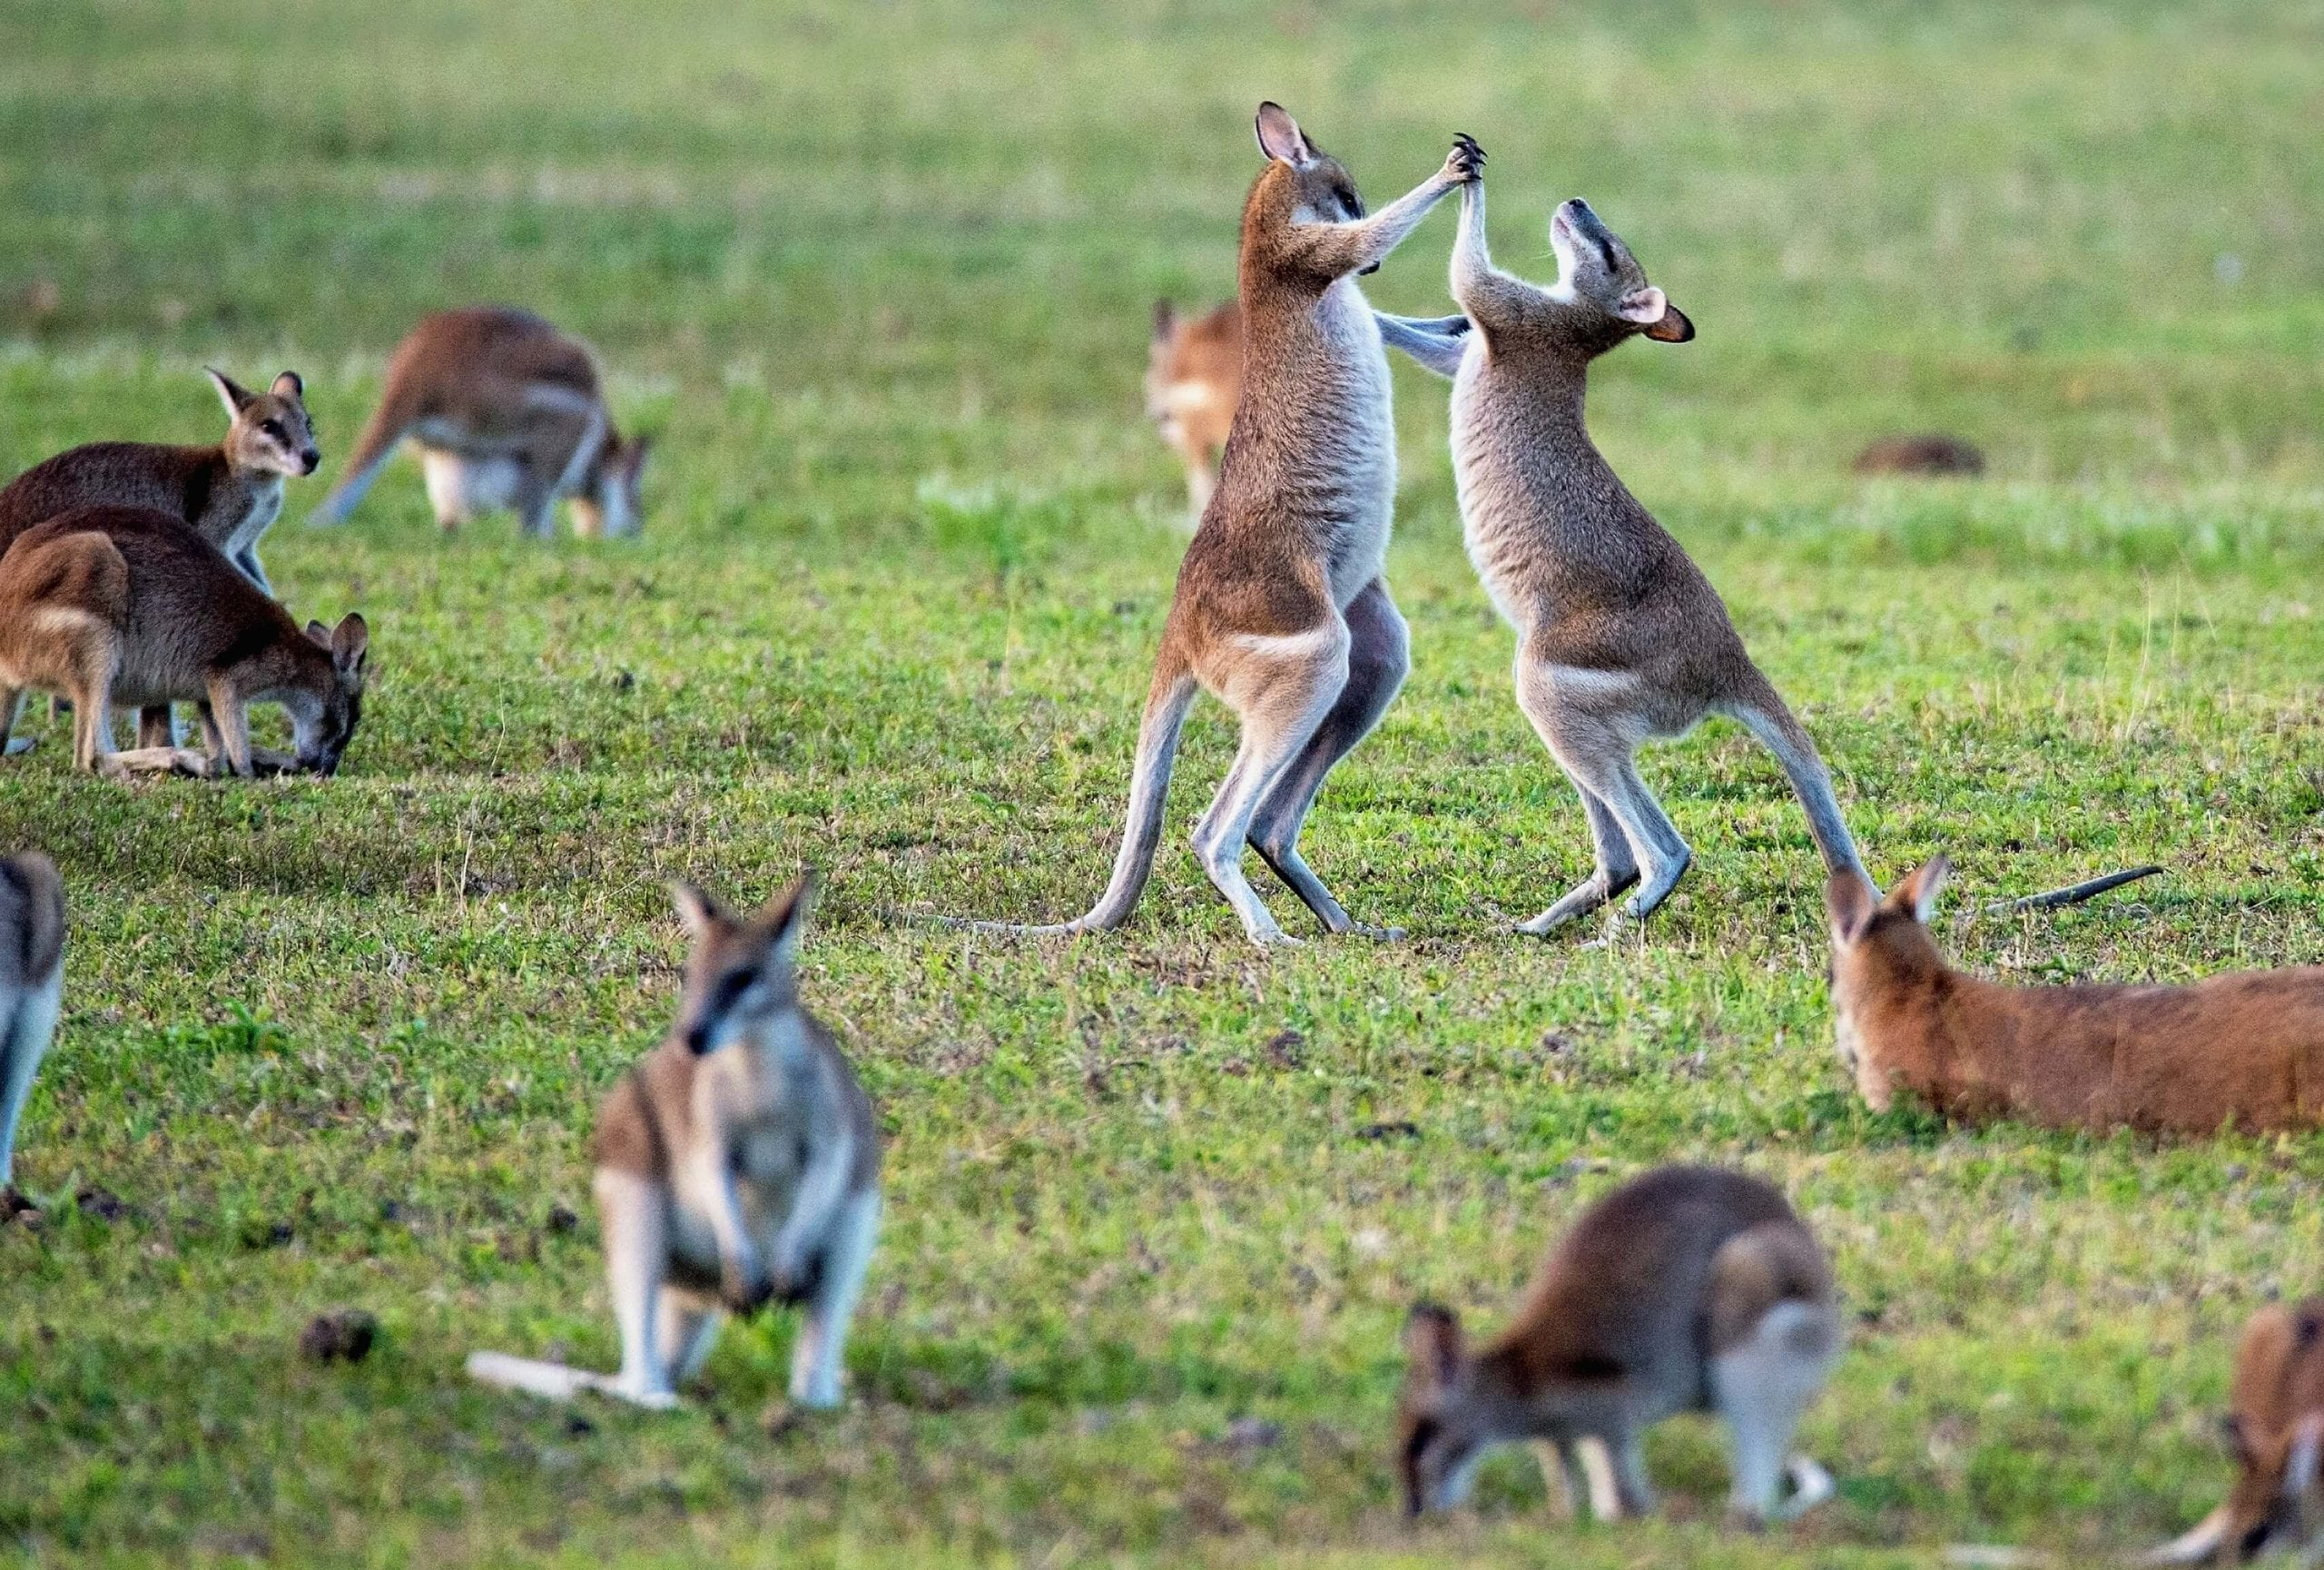 Kangaroos on an open field